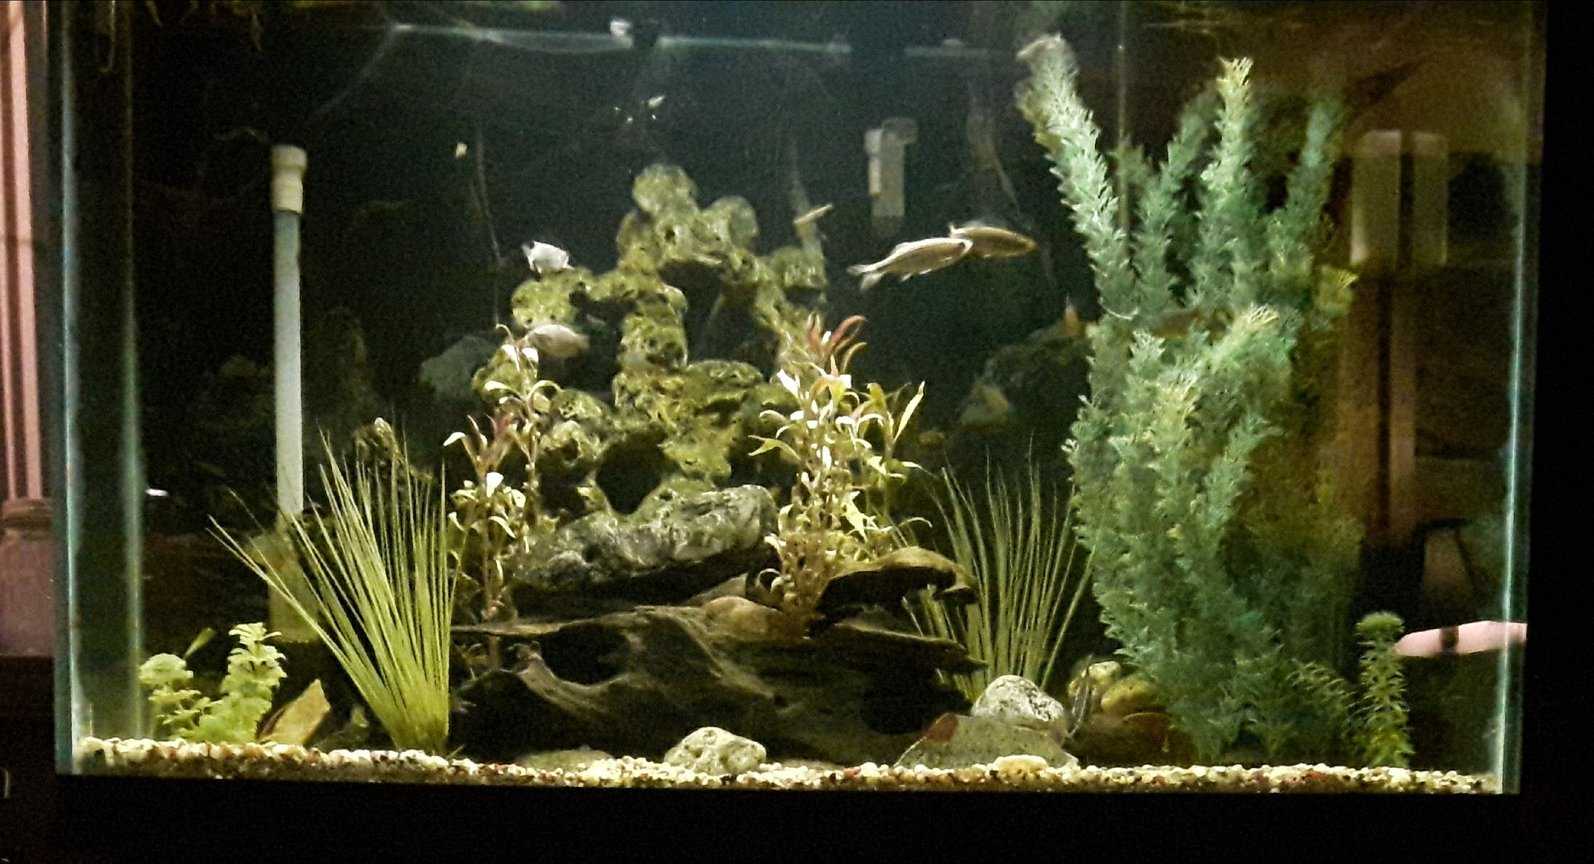 65 gallons freshwater fish tank (mostly fish and non-living decorations) - 65g freshwater